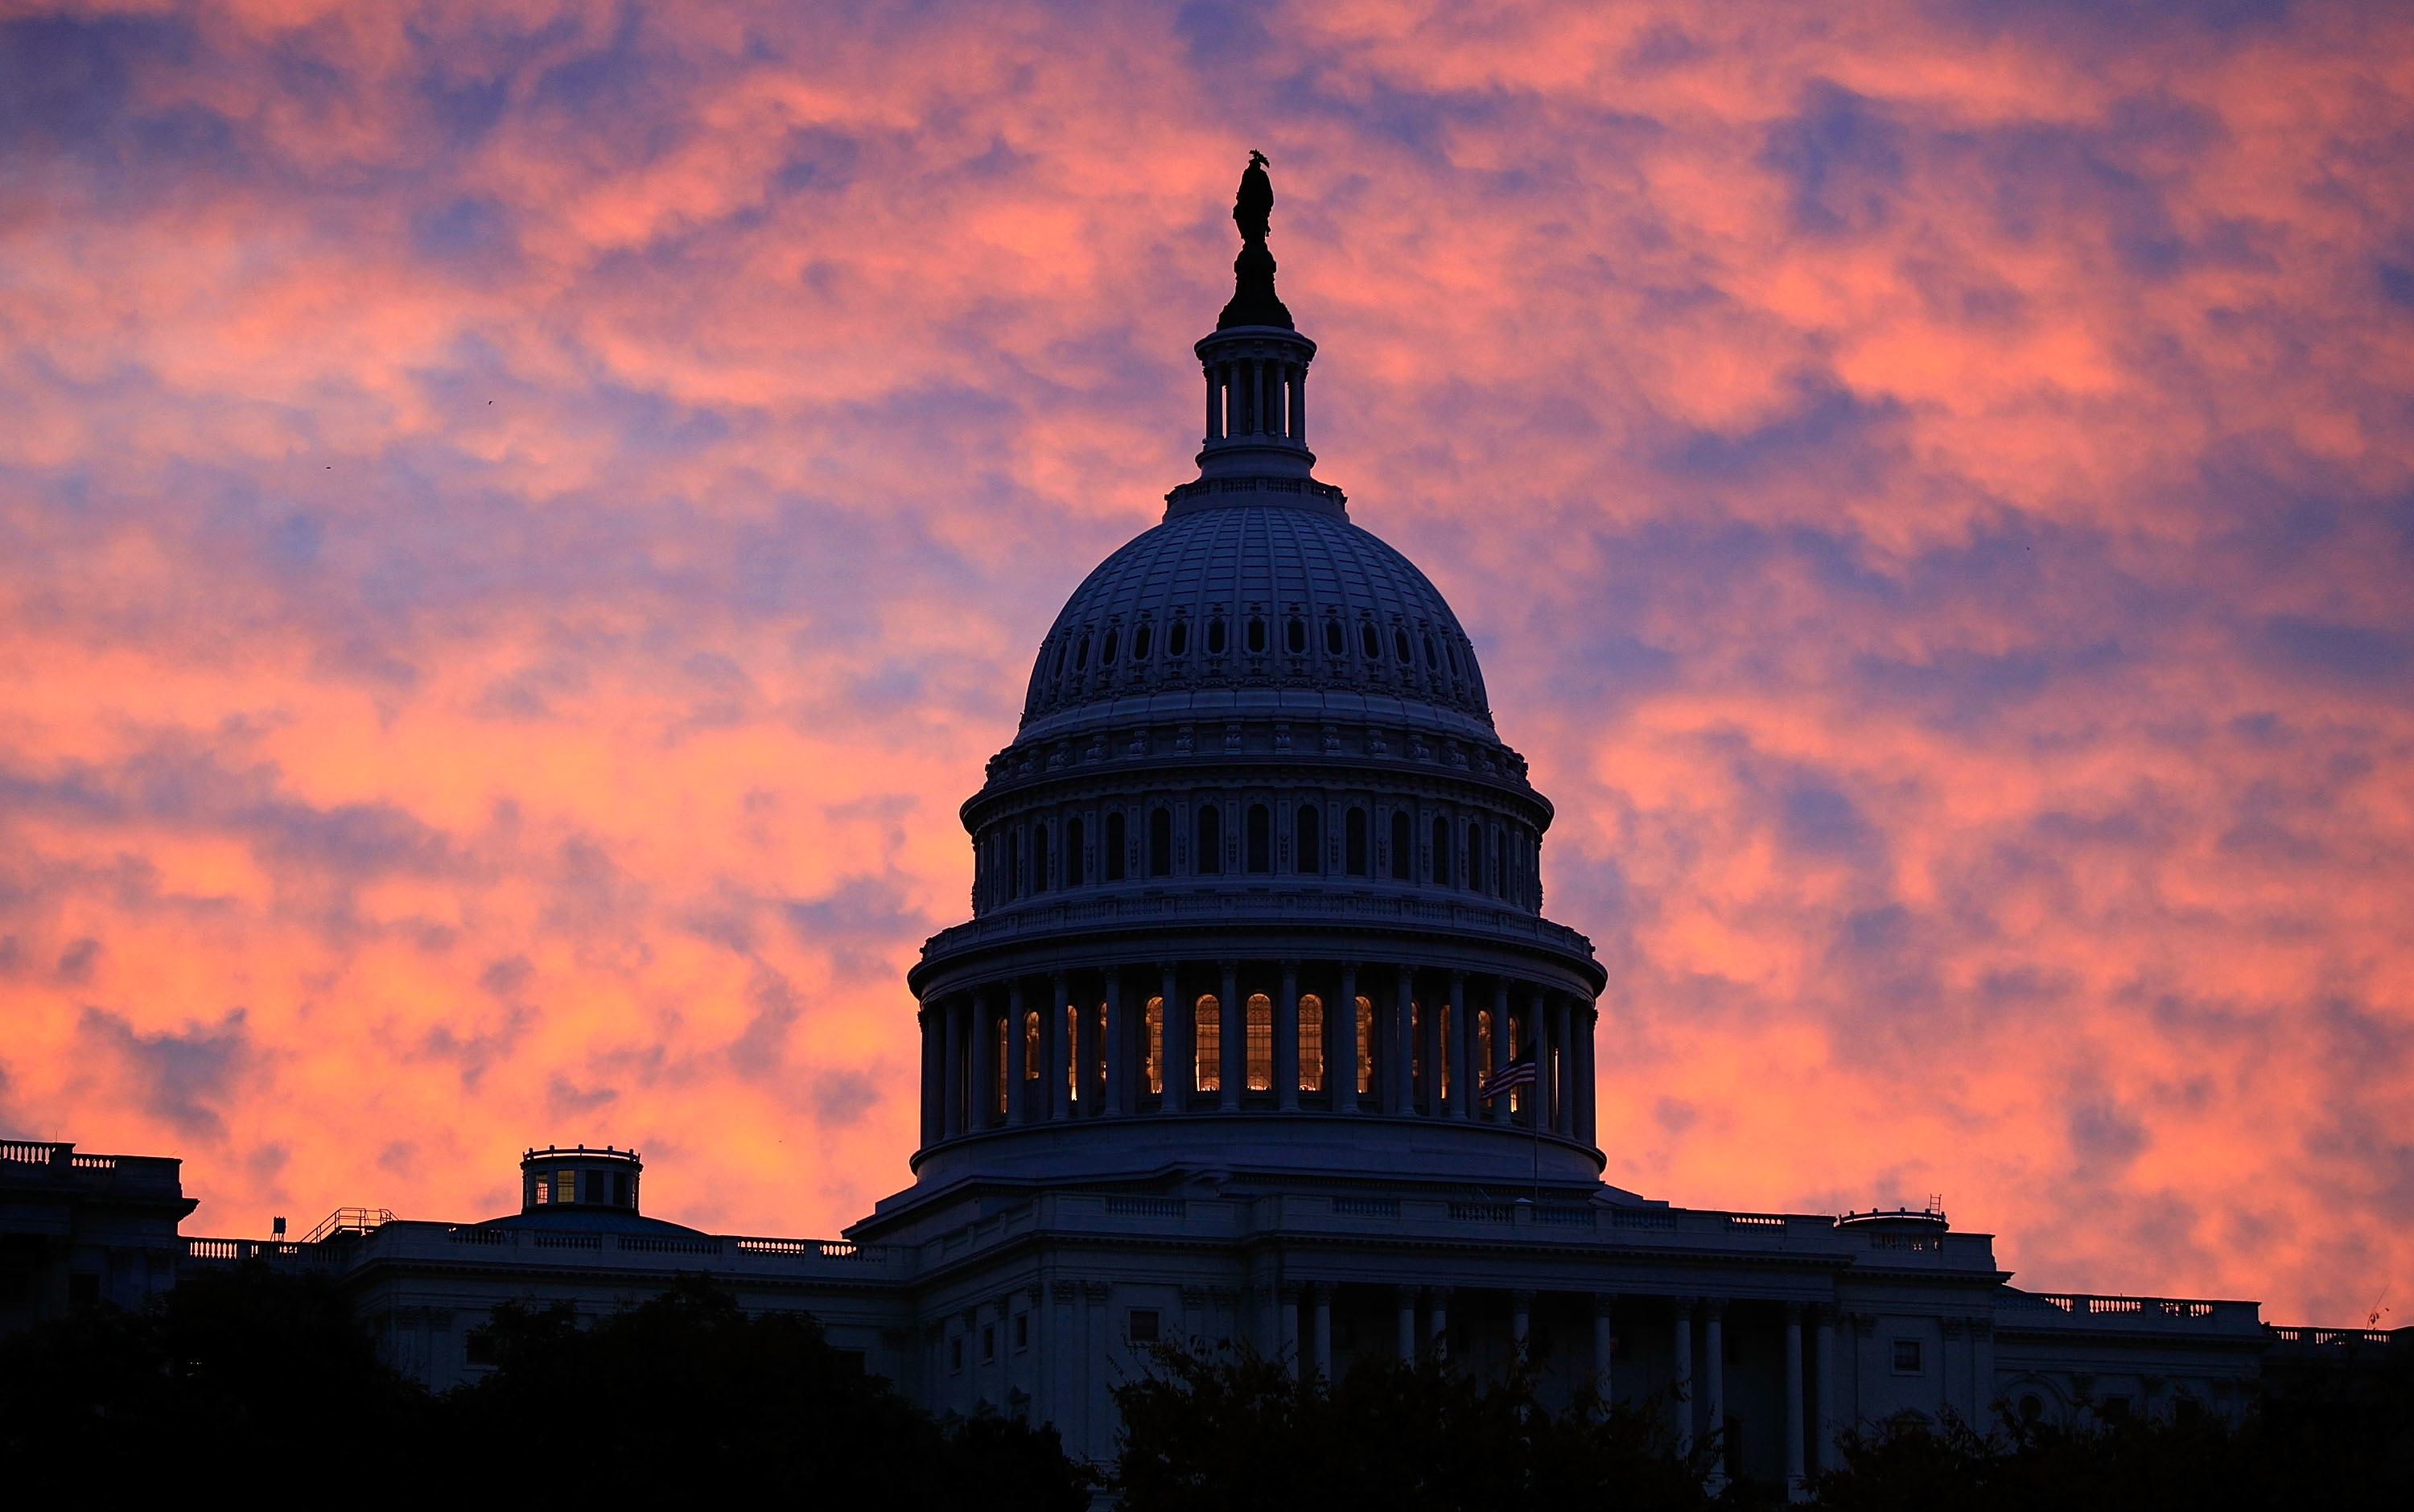 The early morning sun rises behind the US Capitol Building in Washington, DC.